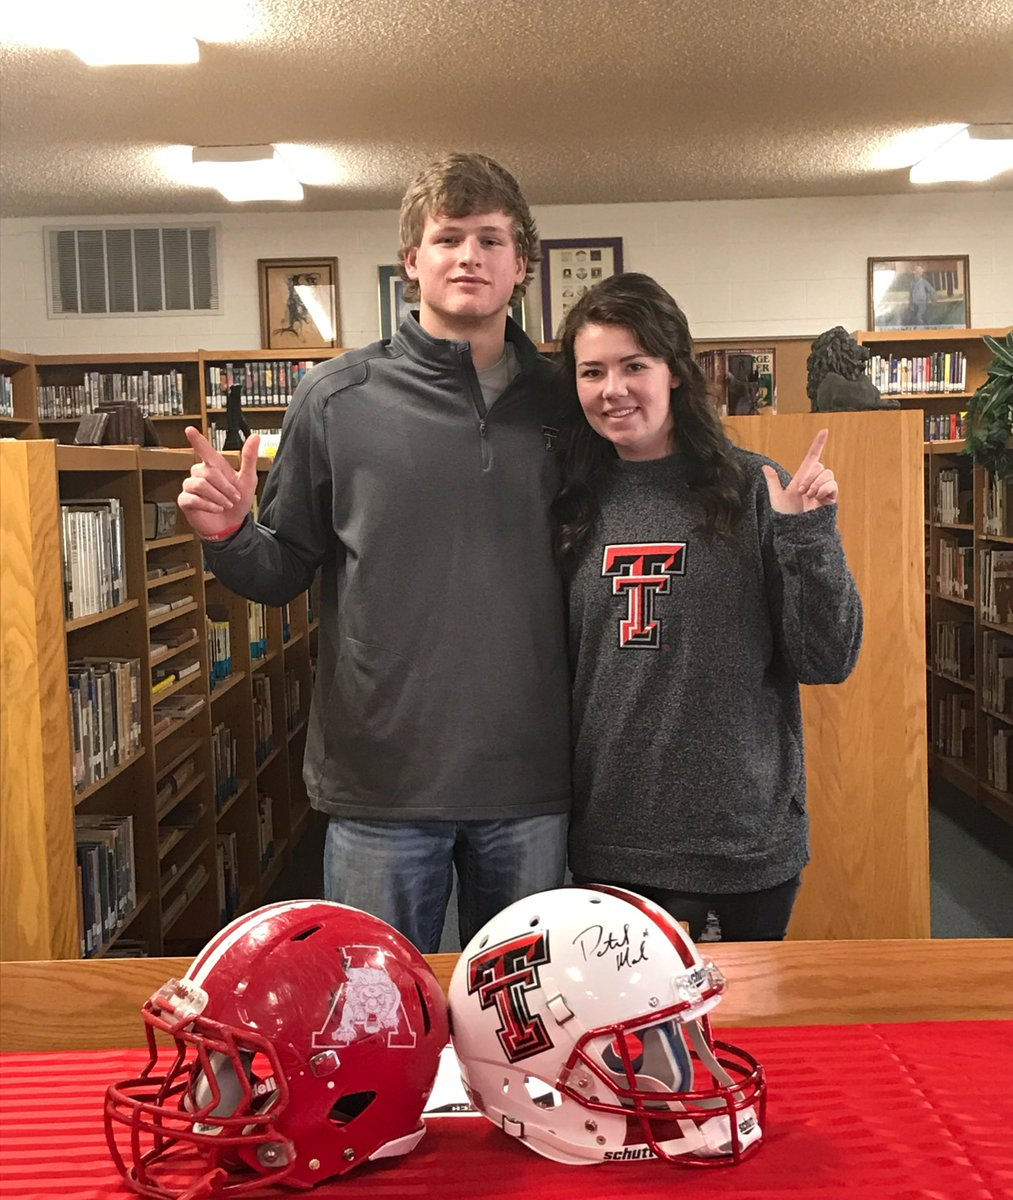 Albany's Dax Neece signing with Texas Tech as a preferred walk-on for football<p></p>